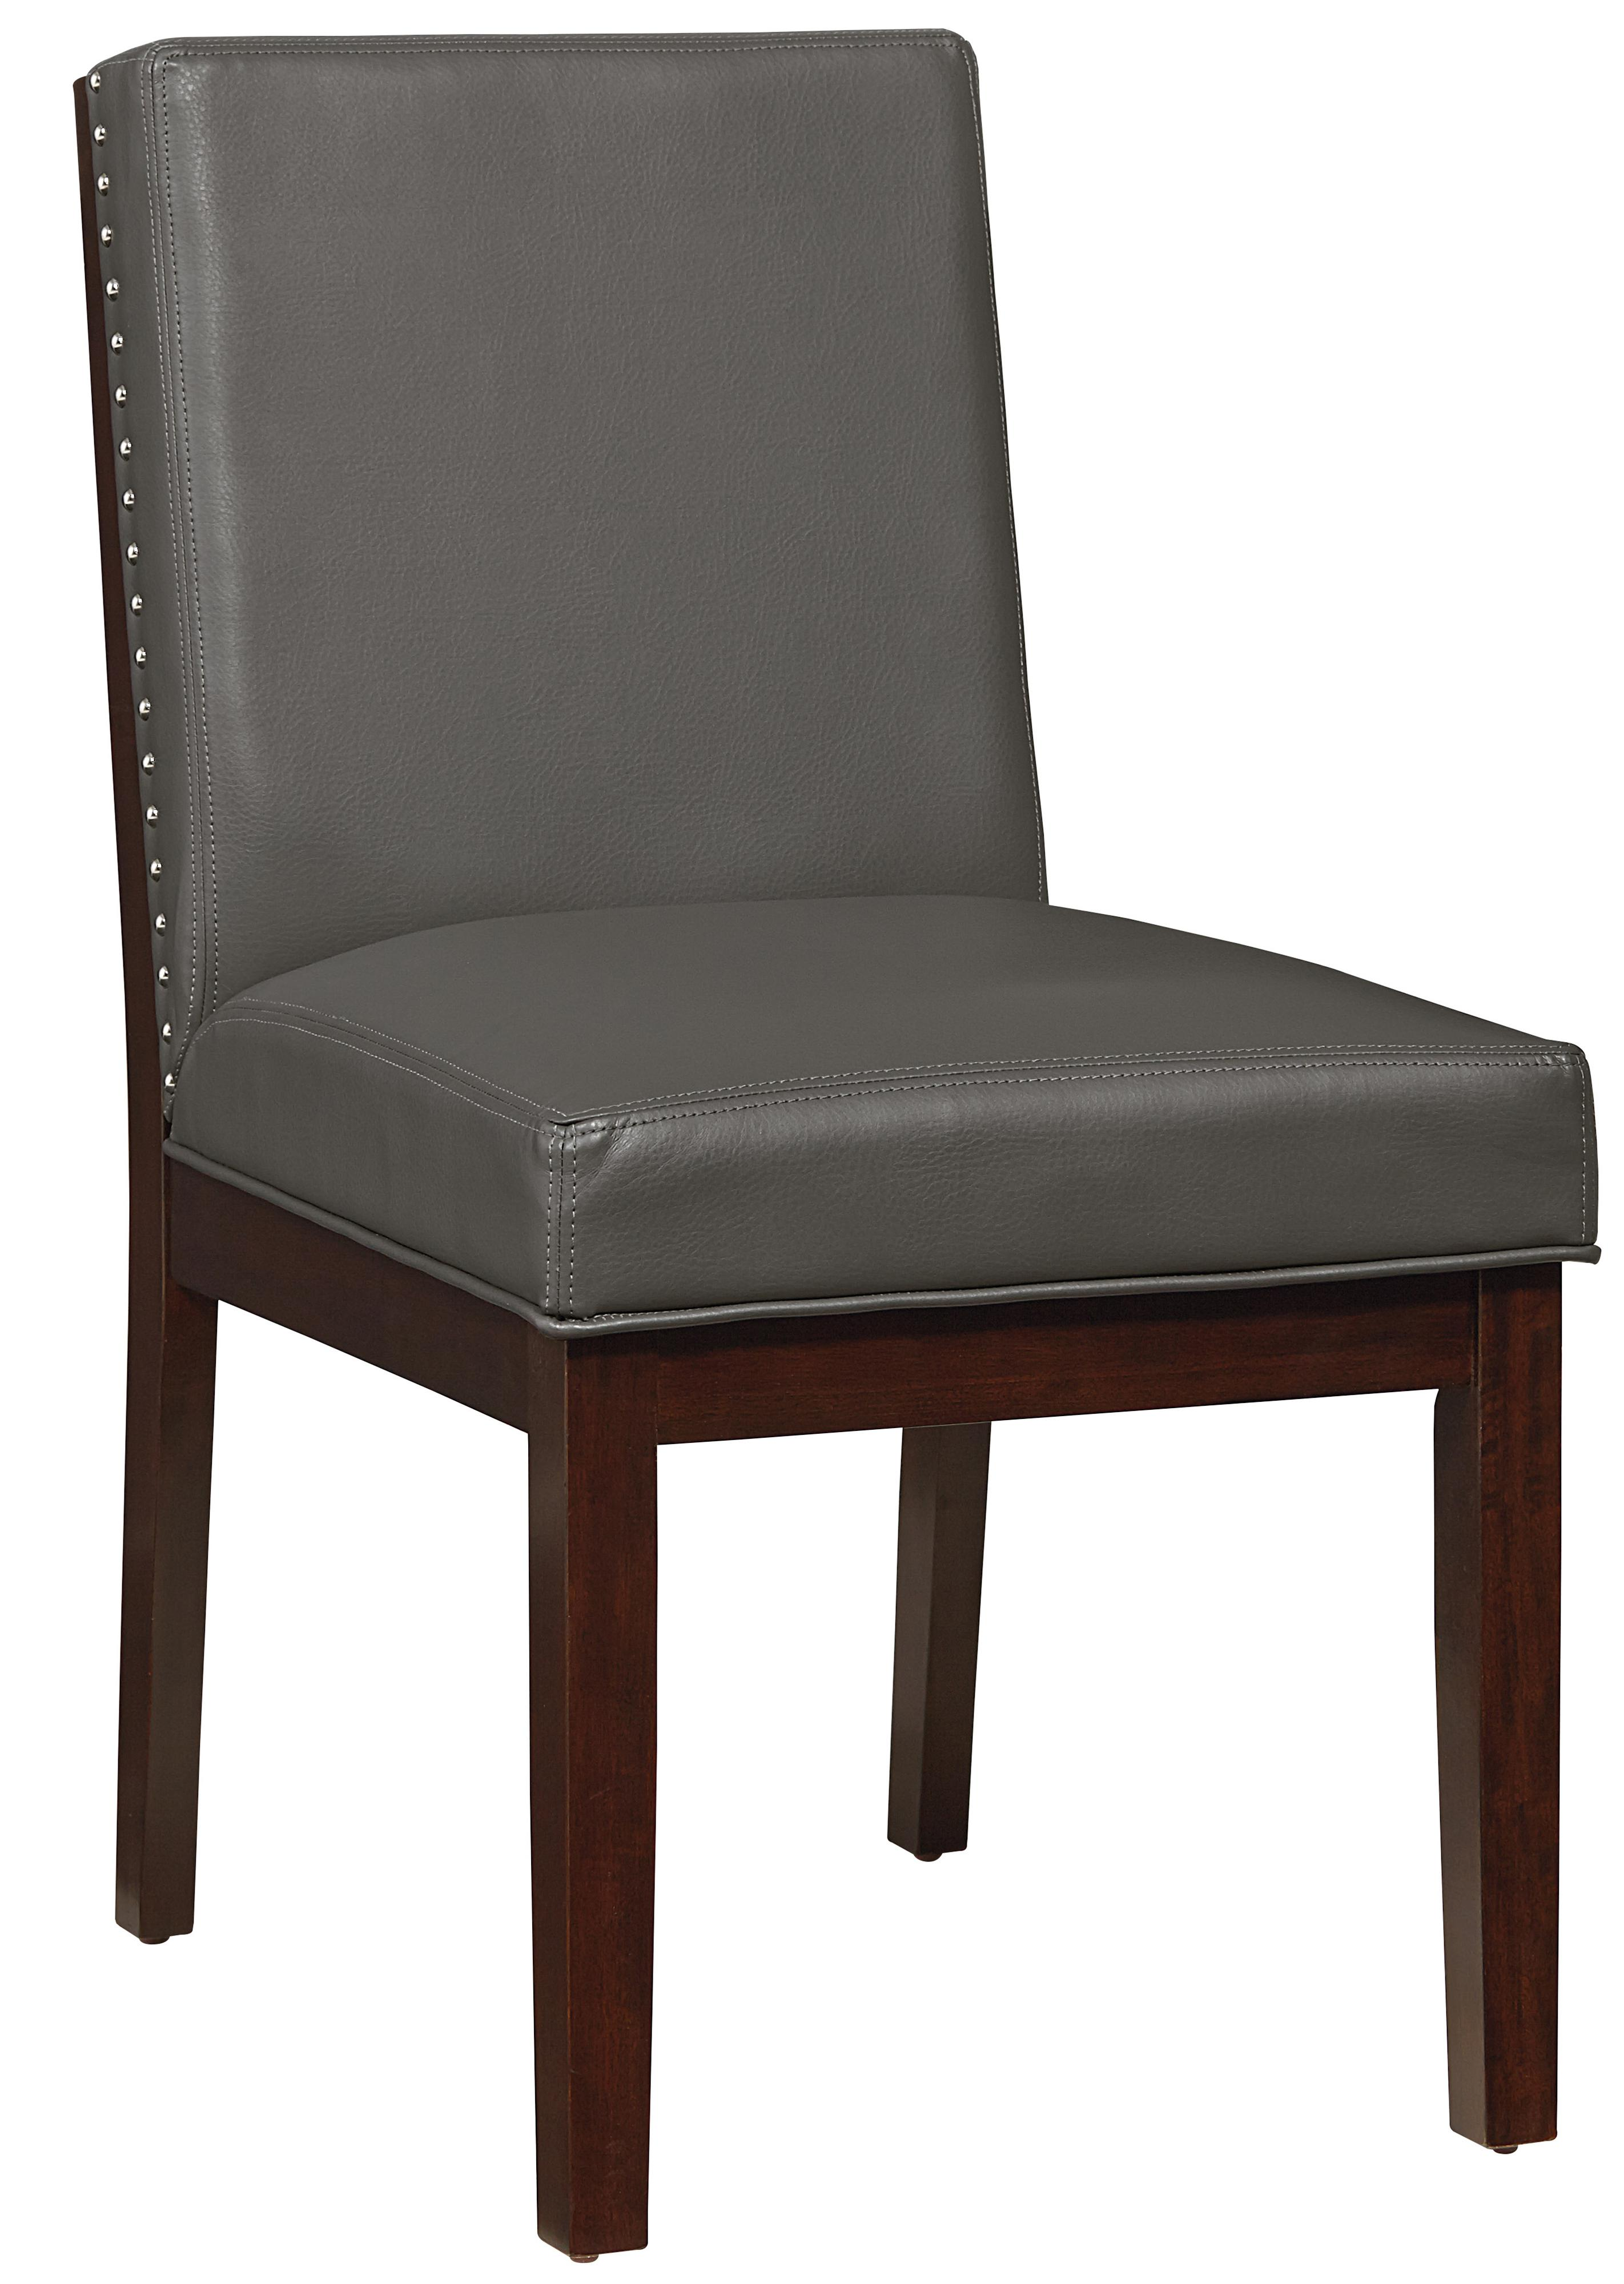 Standard Furniture Couture Elegance Upholstered Side Chair - Item Number: 10565